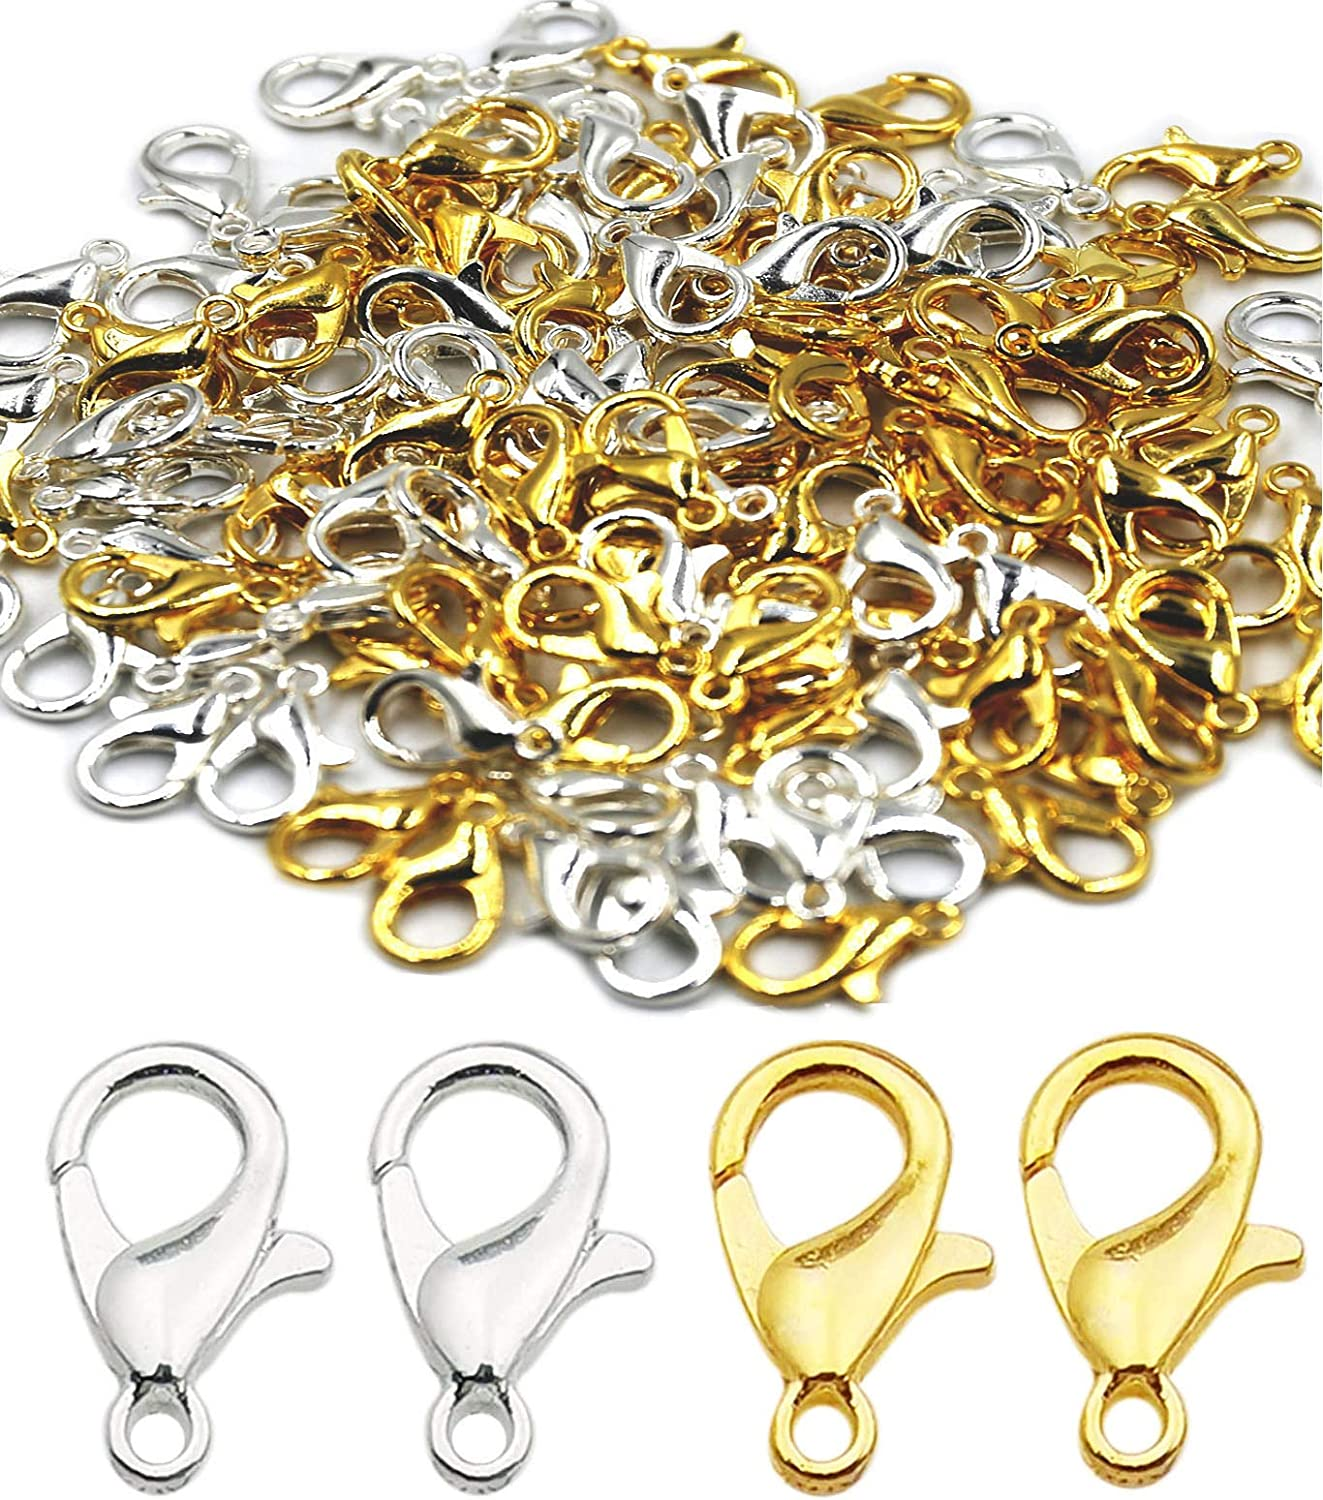 120pcs Mixed 304 Stainless Steel Lobster Claw Clasps DIY Necklace Jewelry Making